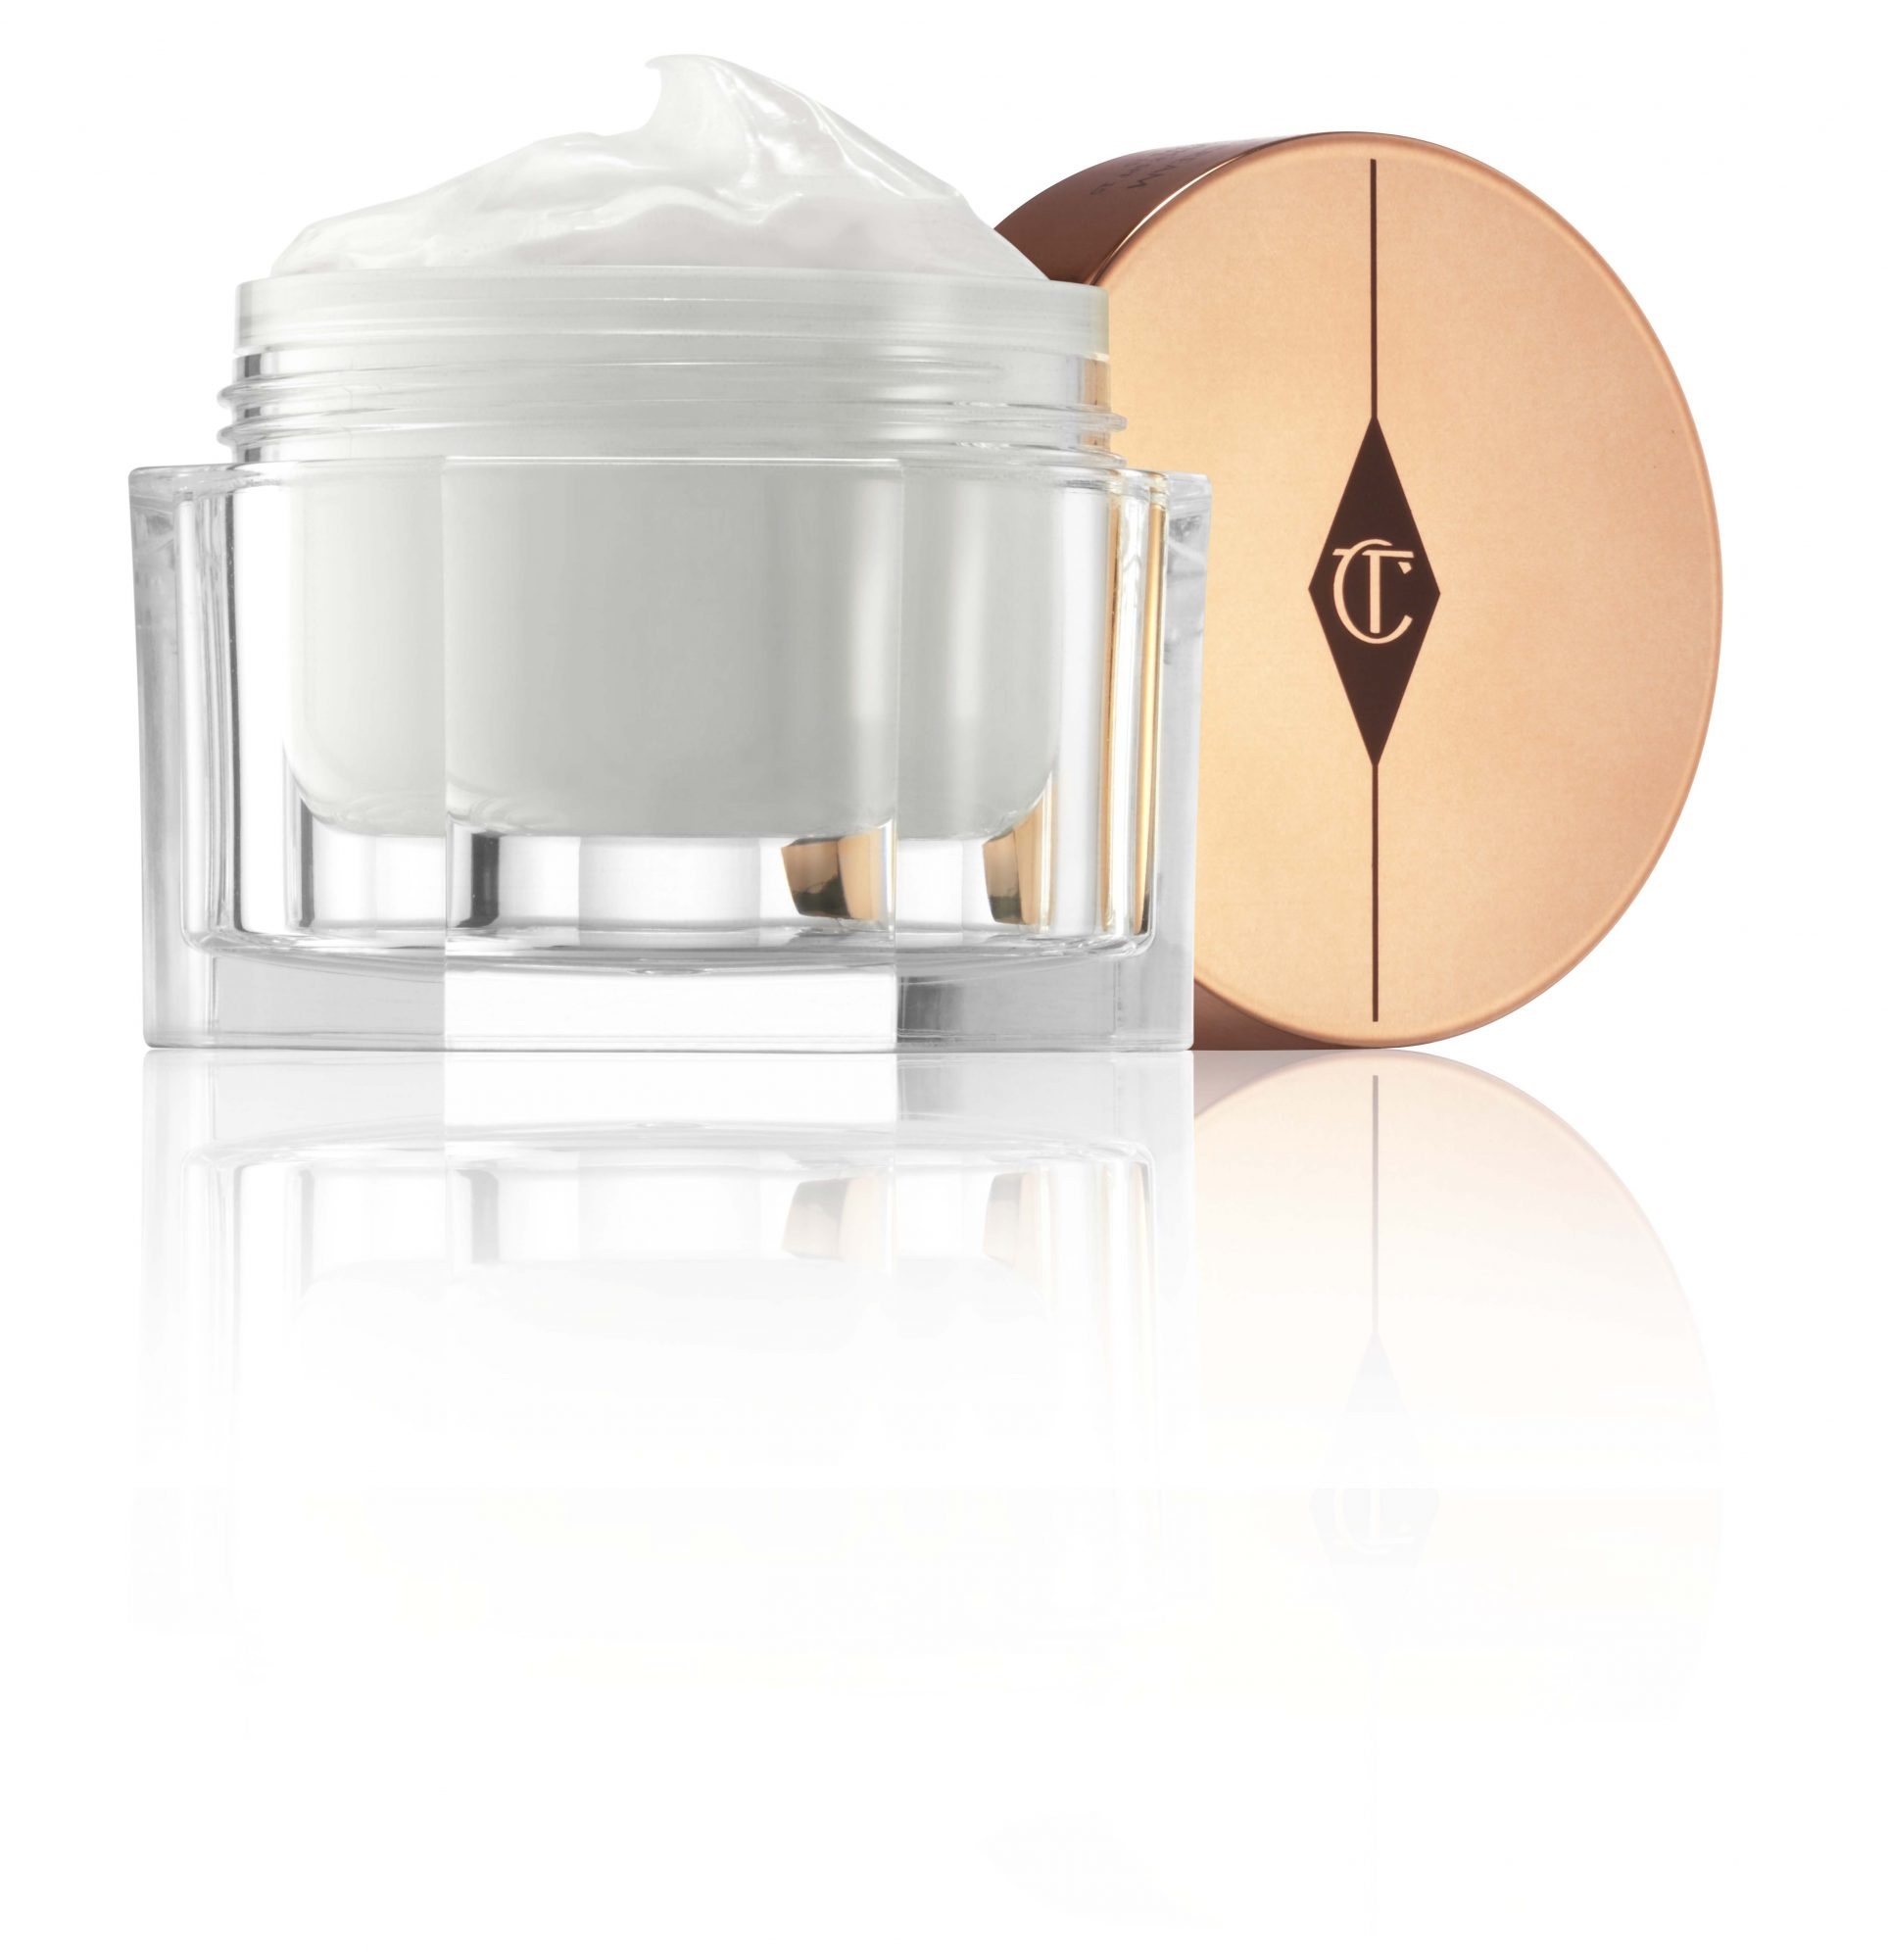 CHARLOTTE_TILBURY-MAGIC-CREAM-LID-OFF copy